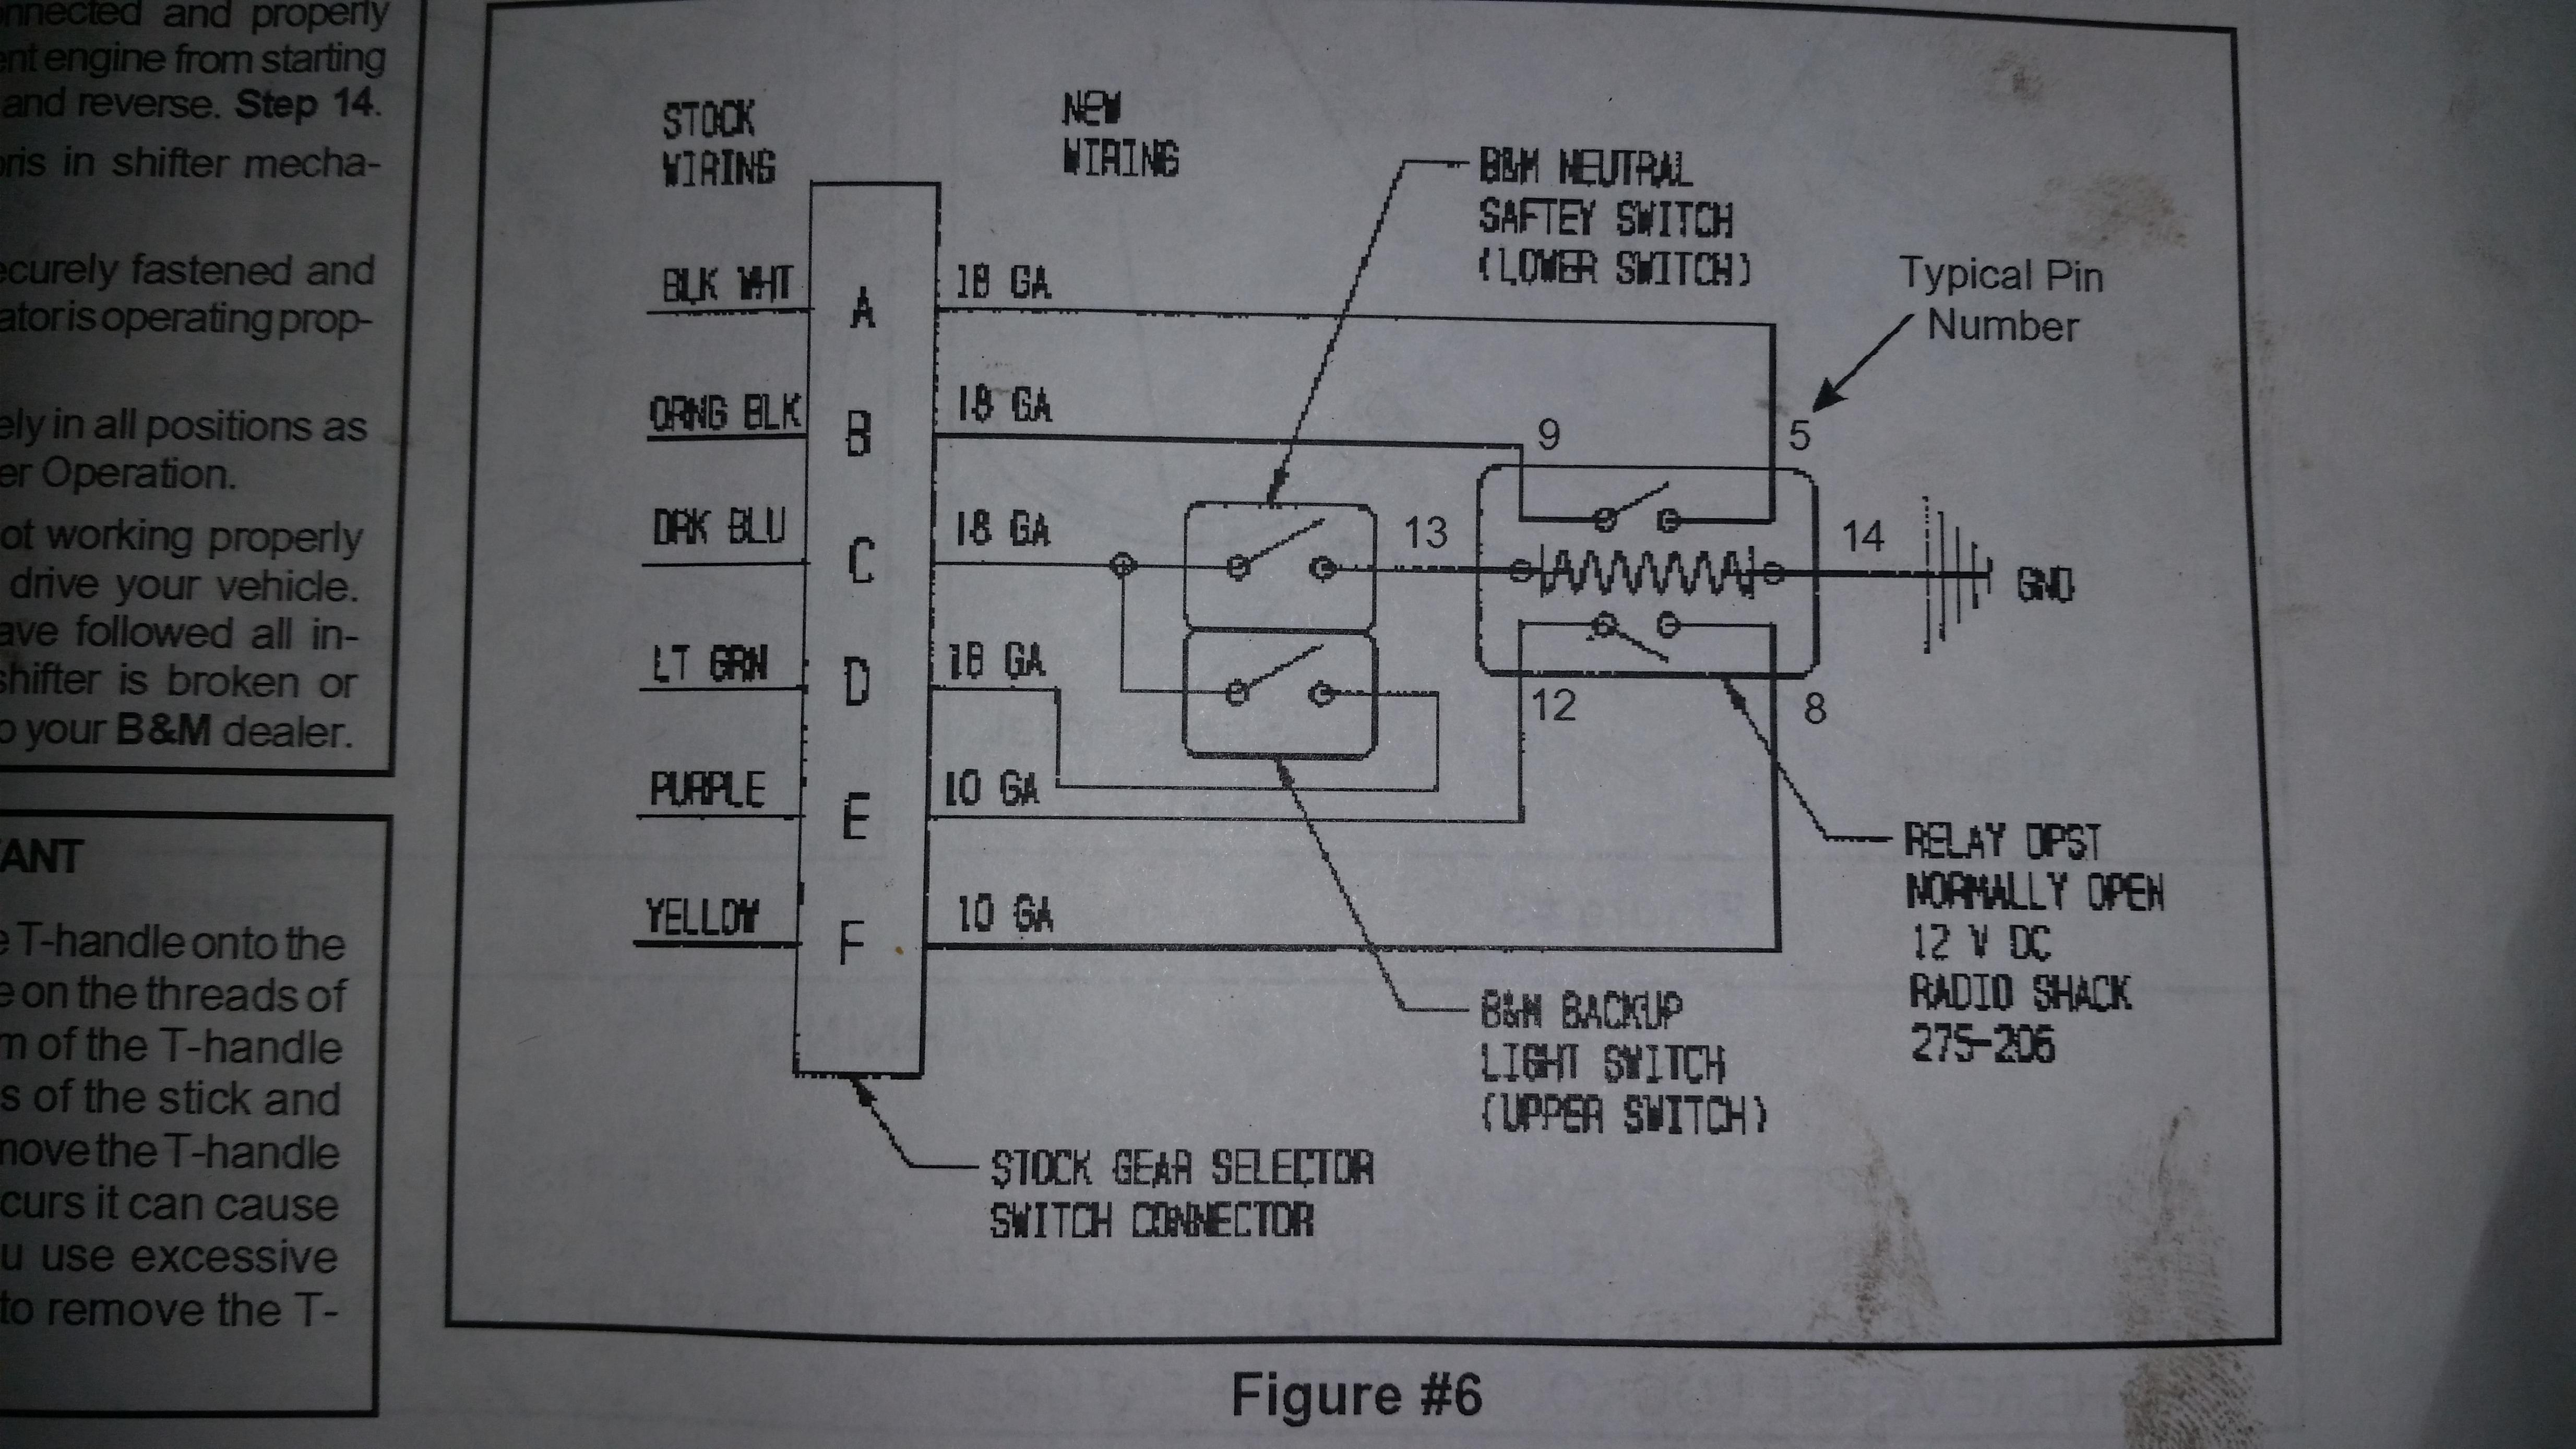 Wiring Diagram 2001 Is300 On Neutral Safety Switch Wiring Diagram For